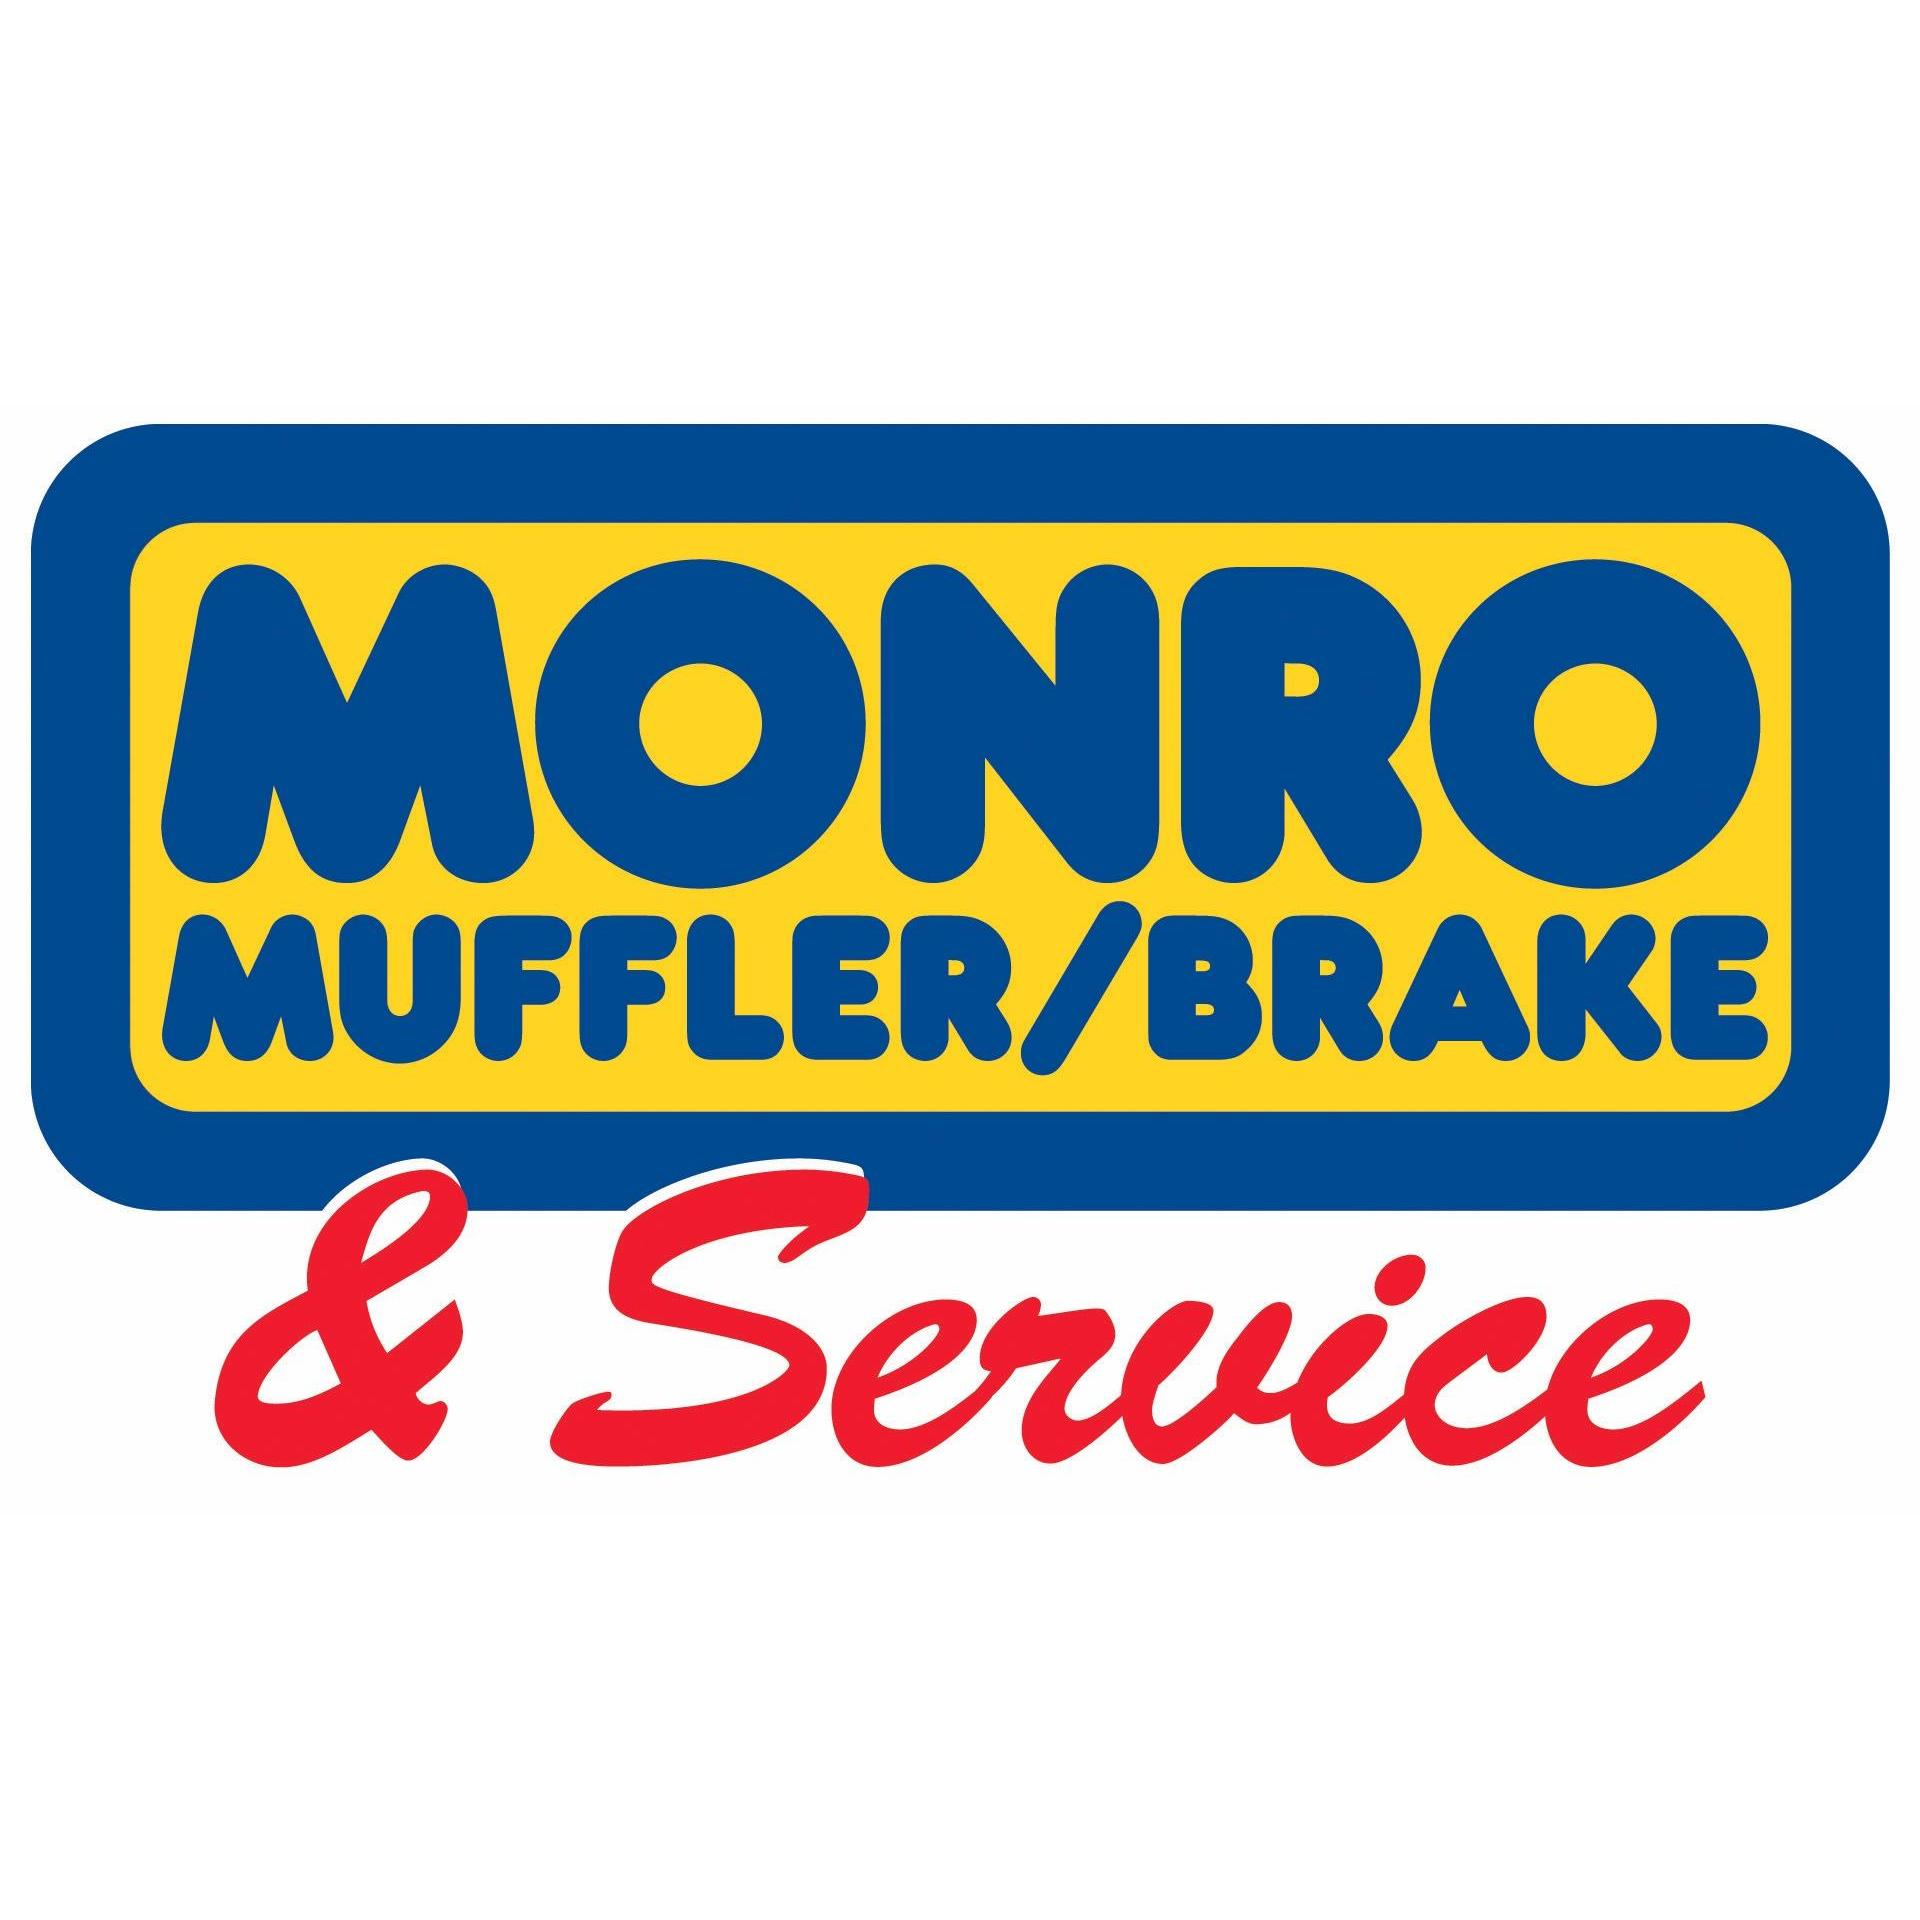 Monro Muffler Brake & Service - Closed - Toledo, OH - General Auto Repair & Service